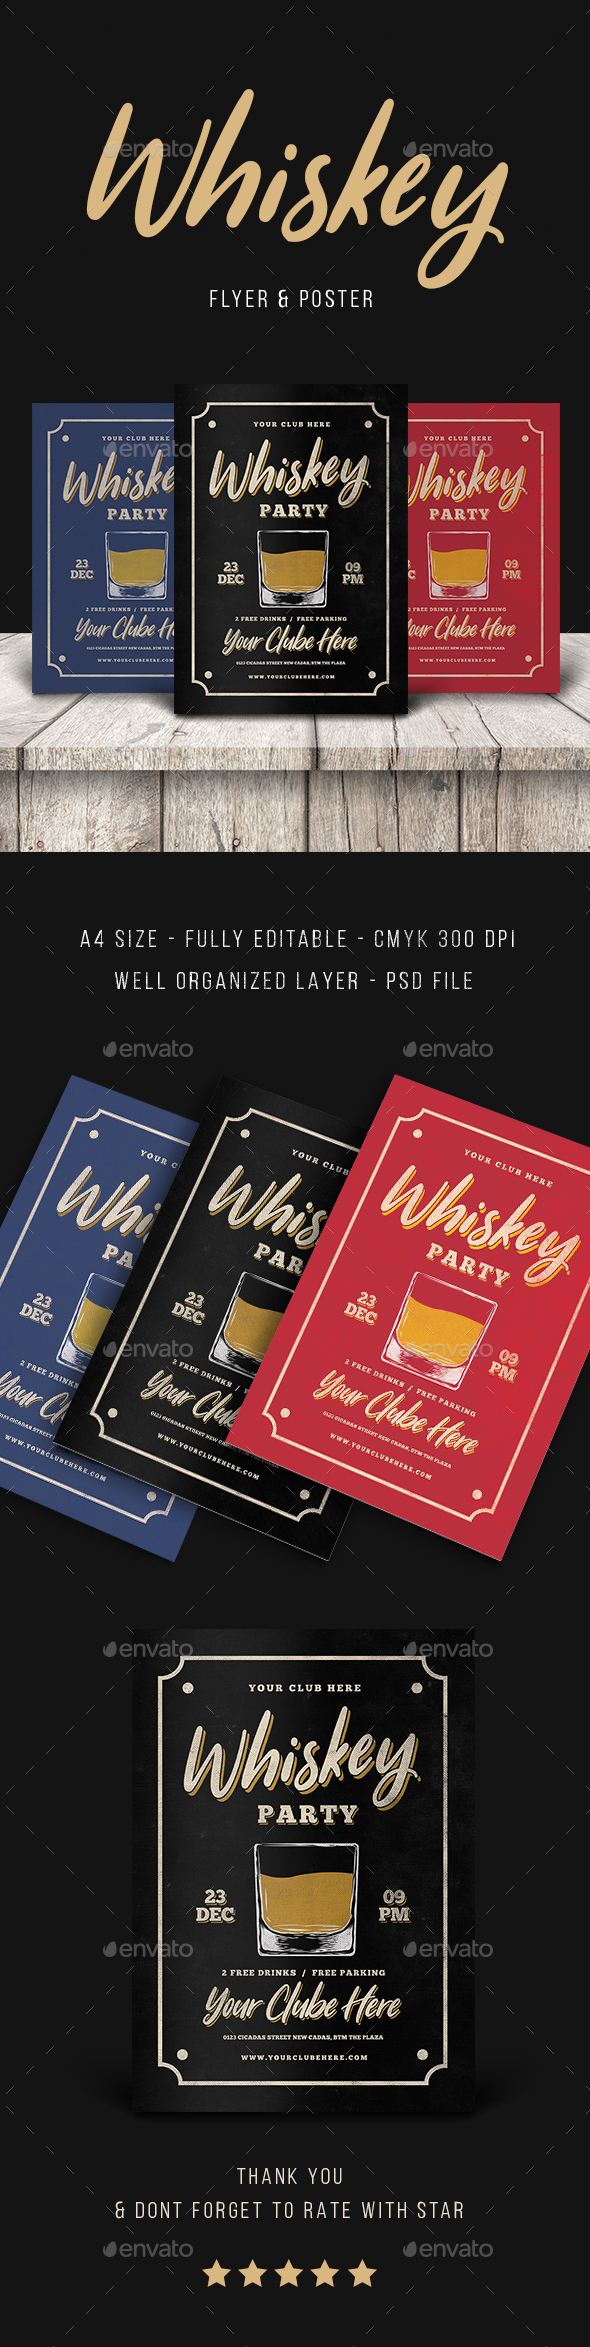 Vintage Whisky Party - Flyers Print Templates